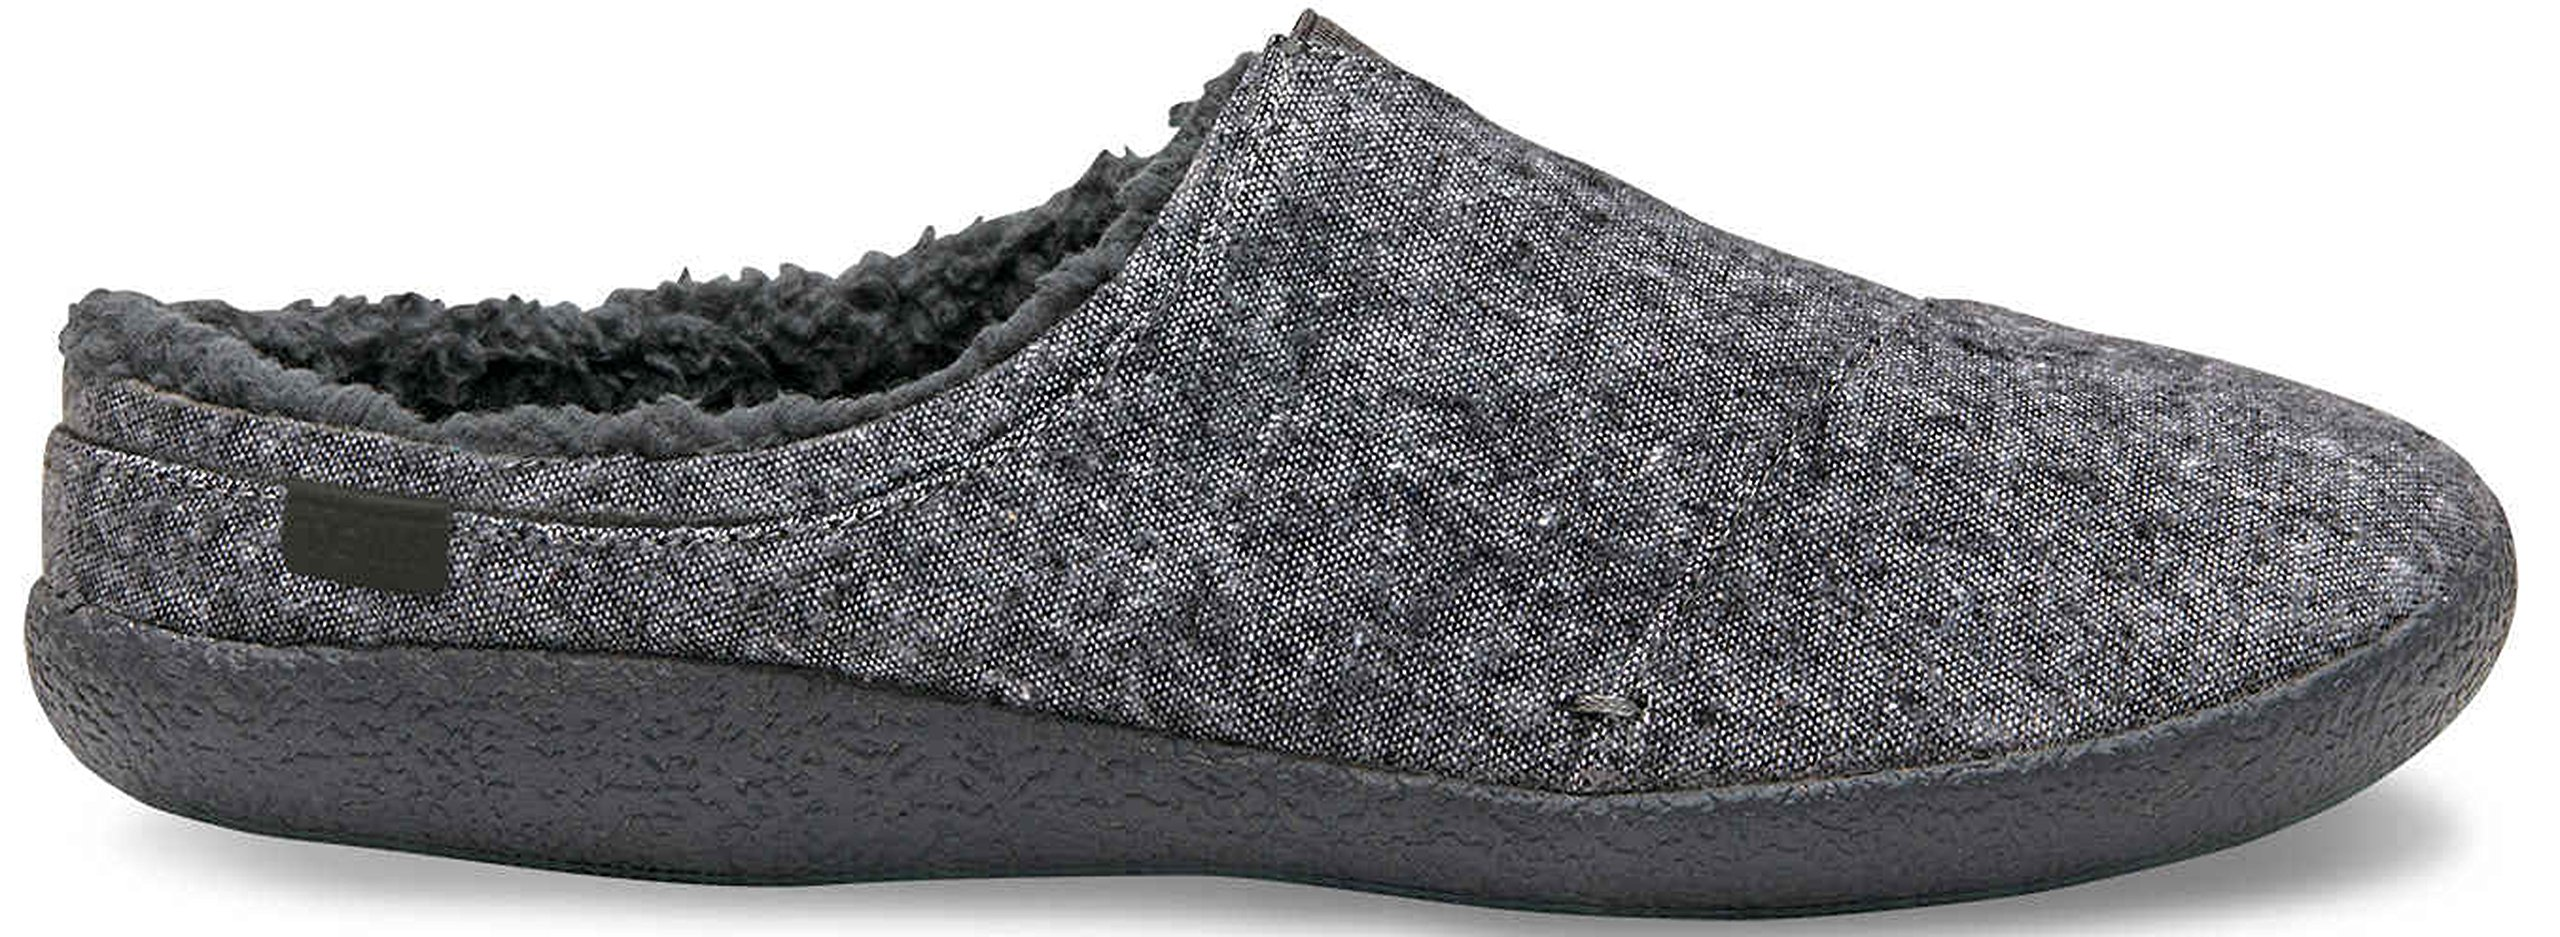 287cbf55e1e Galleon - TOMS Berkeley Slippers Grey Slub Textile 10009117 Mens 7